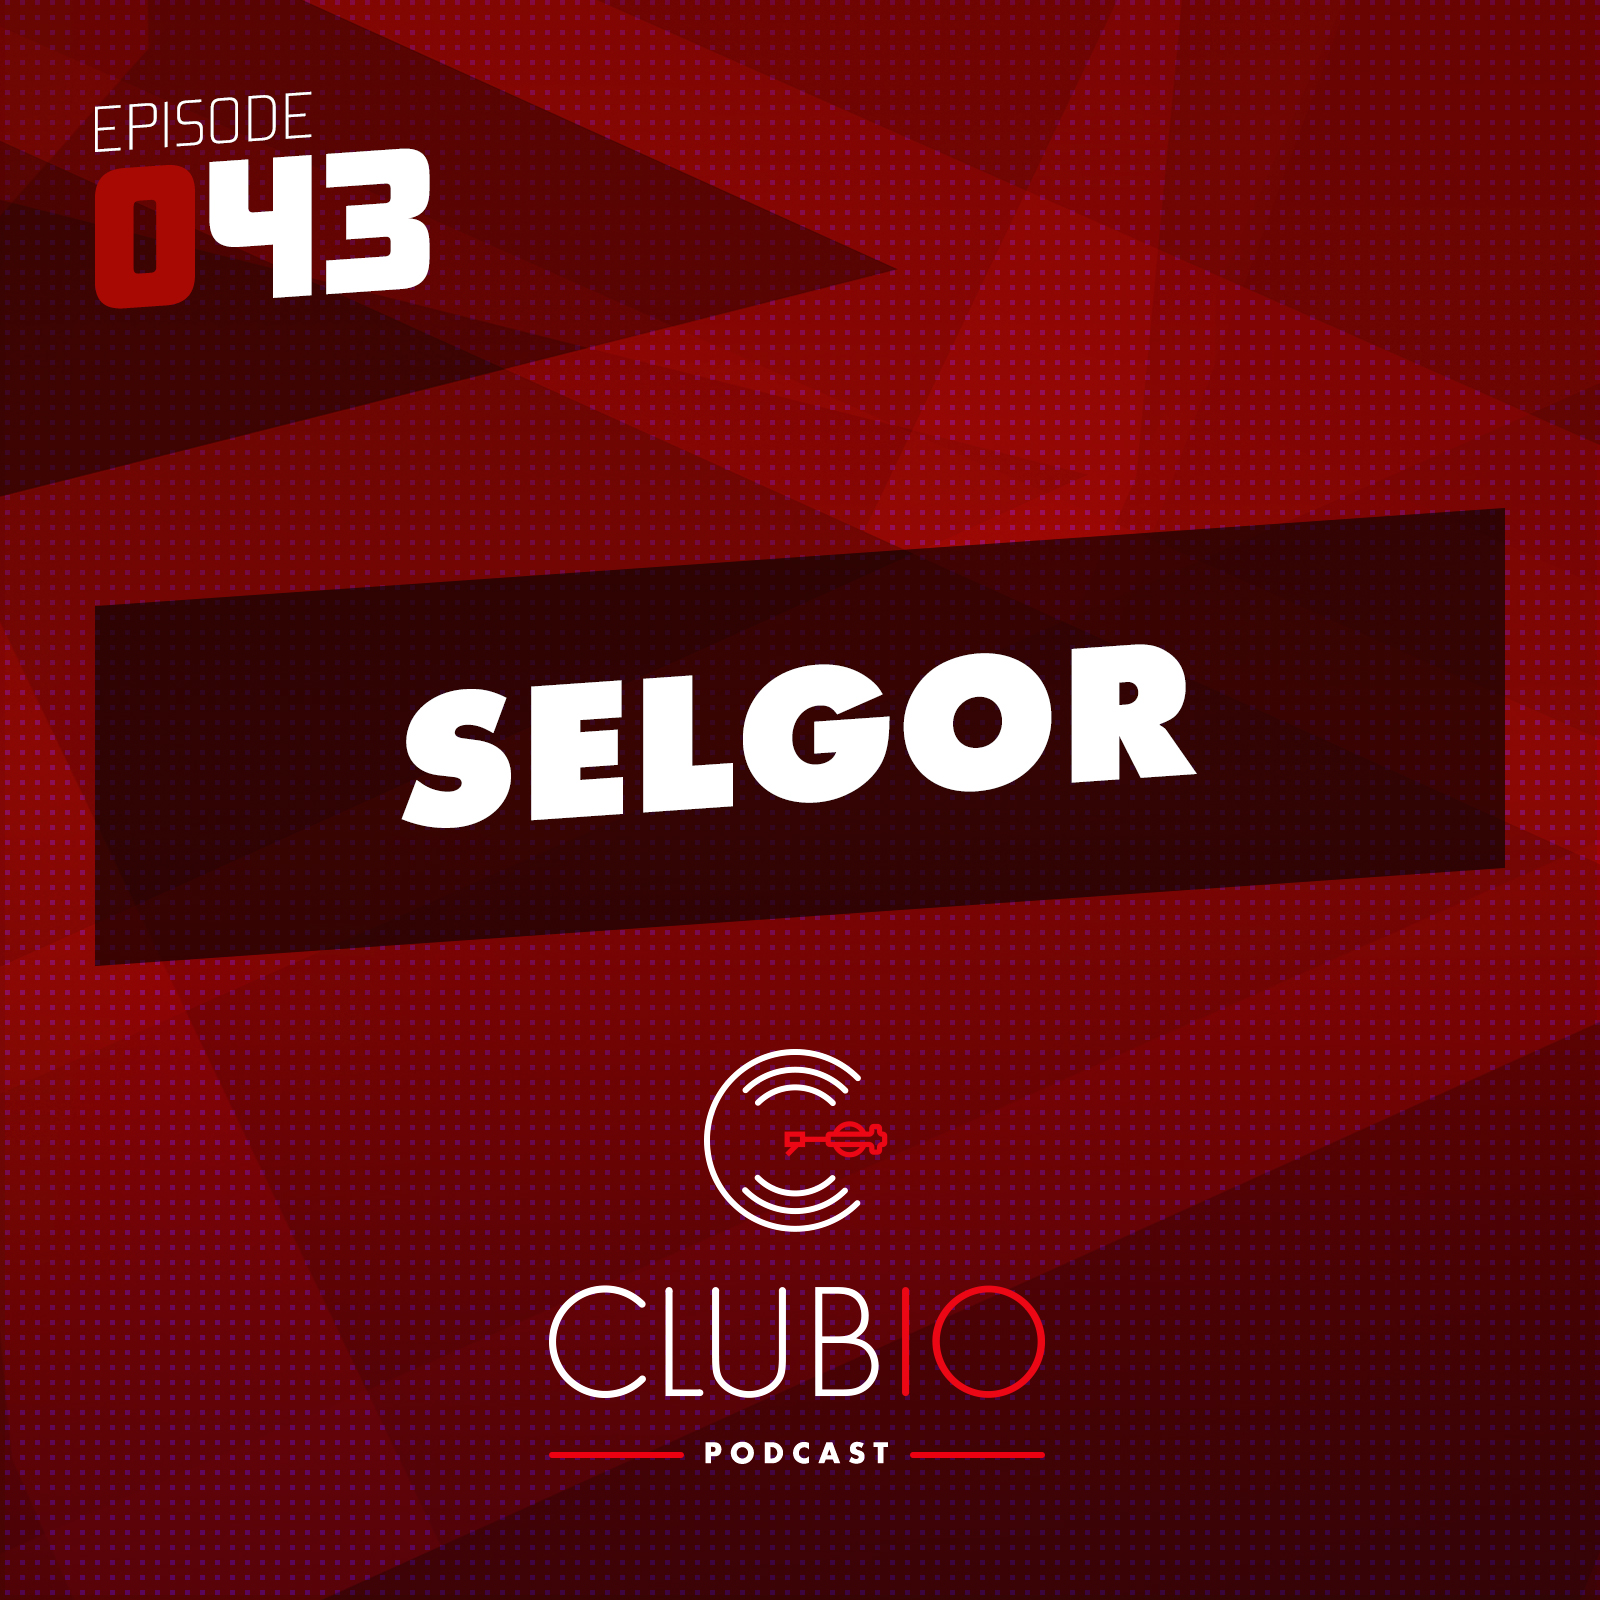 Clubio Podcast 043 - Selgor